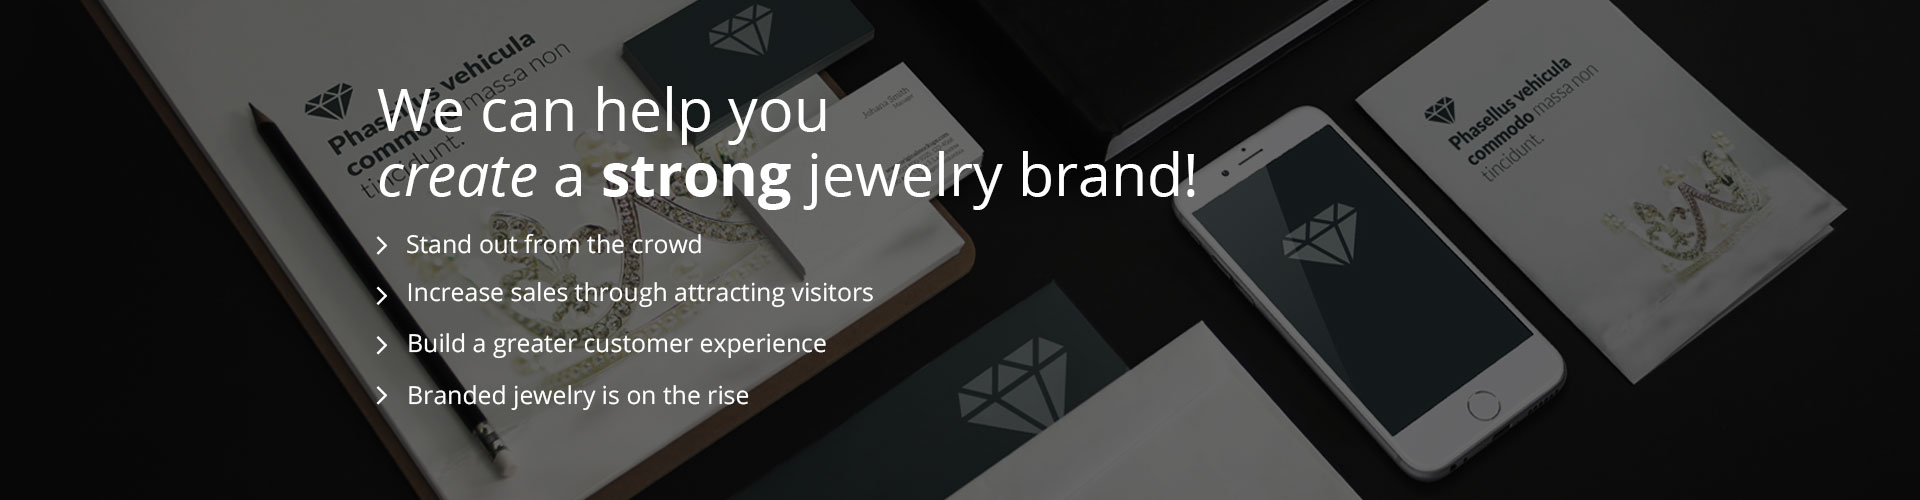 create a strong jewelry brand